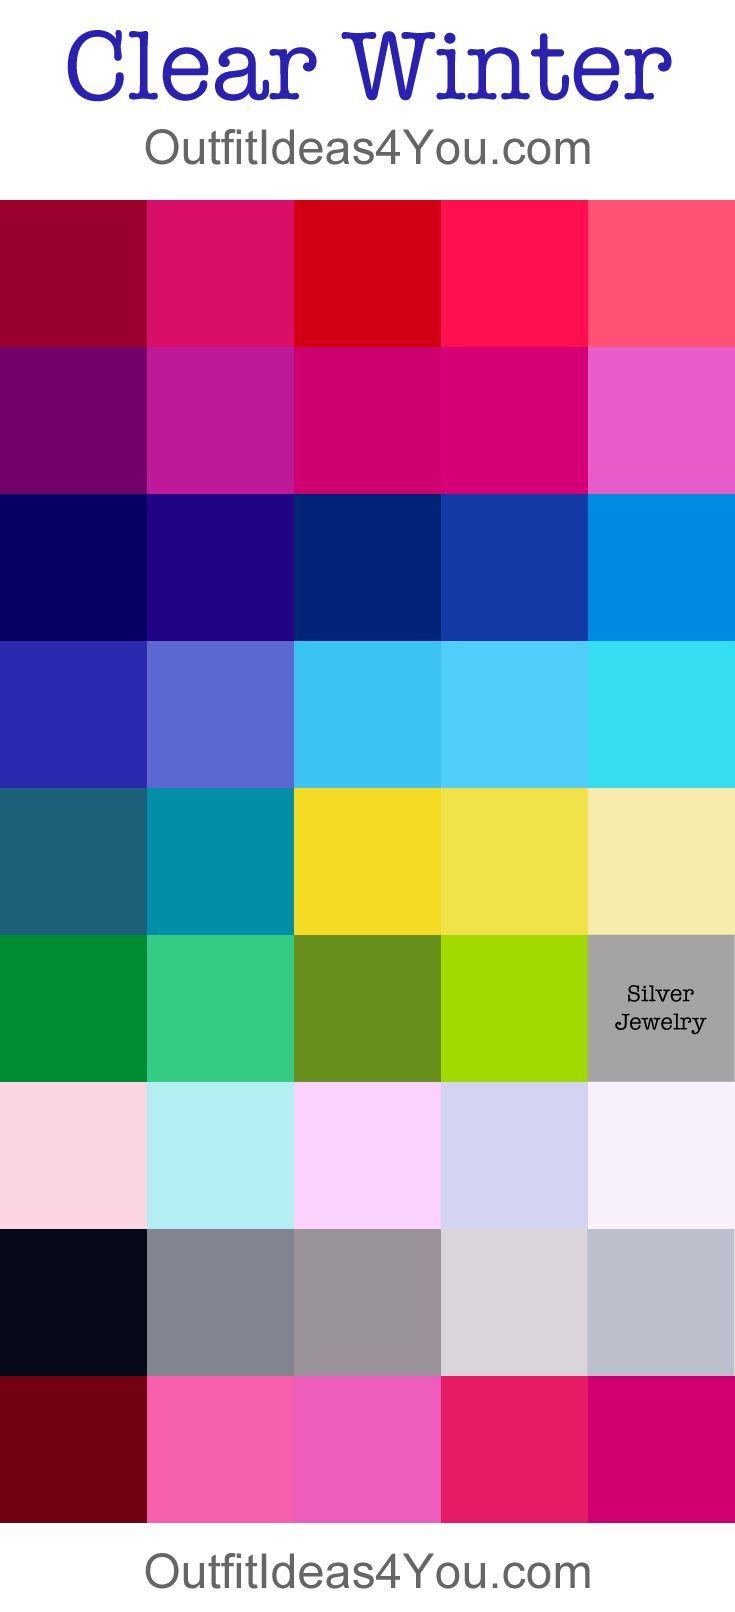 Dyt Type 4 Color Chart Google Search Dyt Type 4 Winter